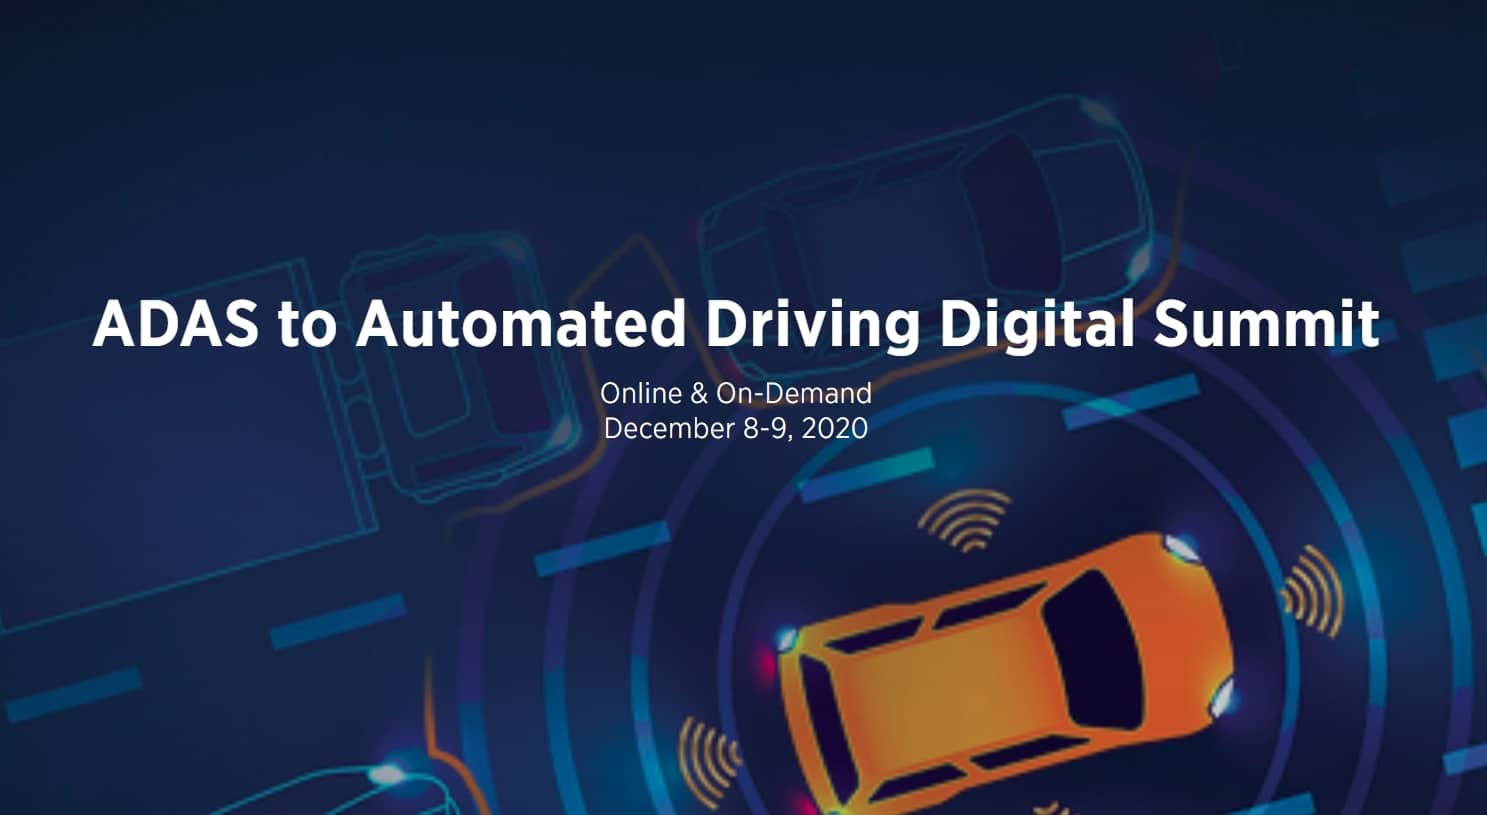 ADAS to Automated Driving Digital Summit